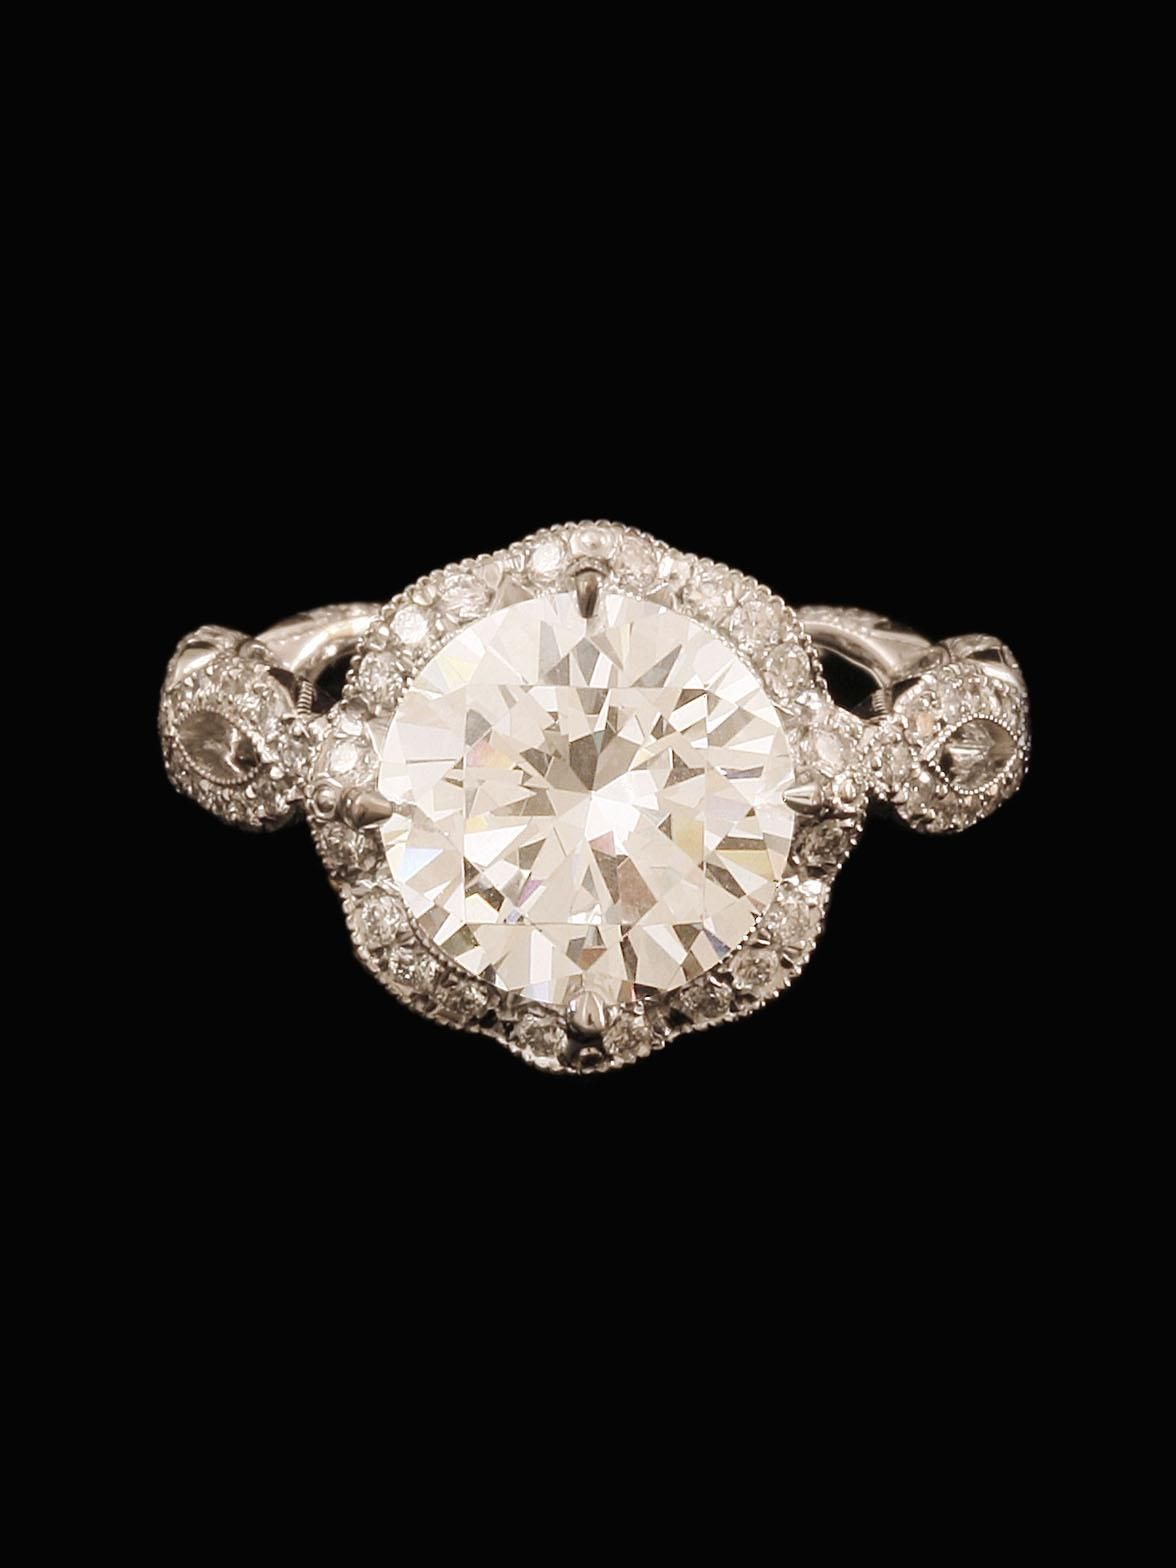 Katharine James Bellas Love Collection Diamond Engagement Ring